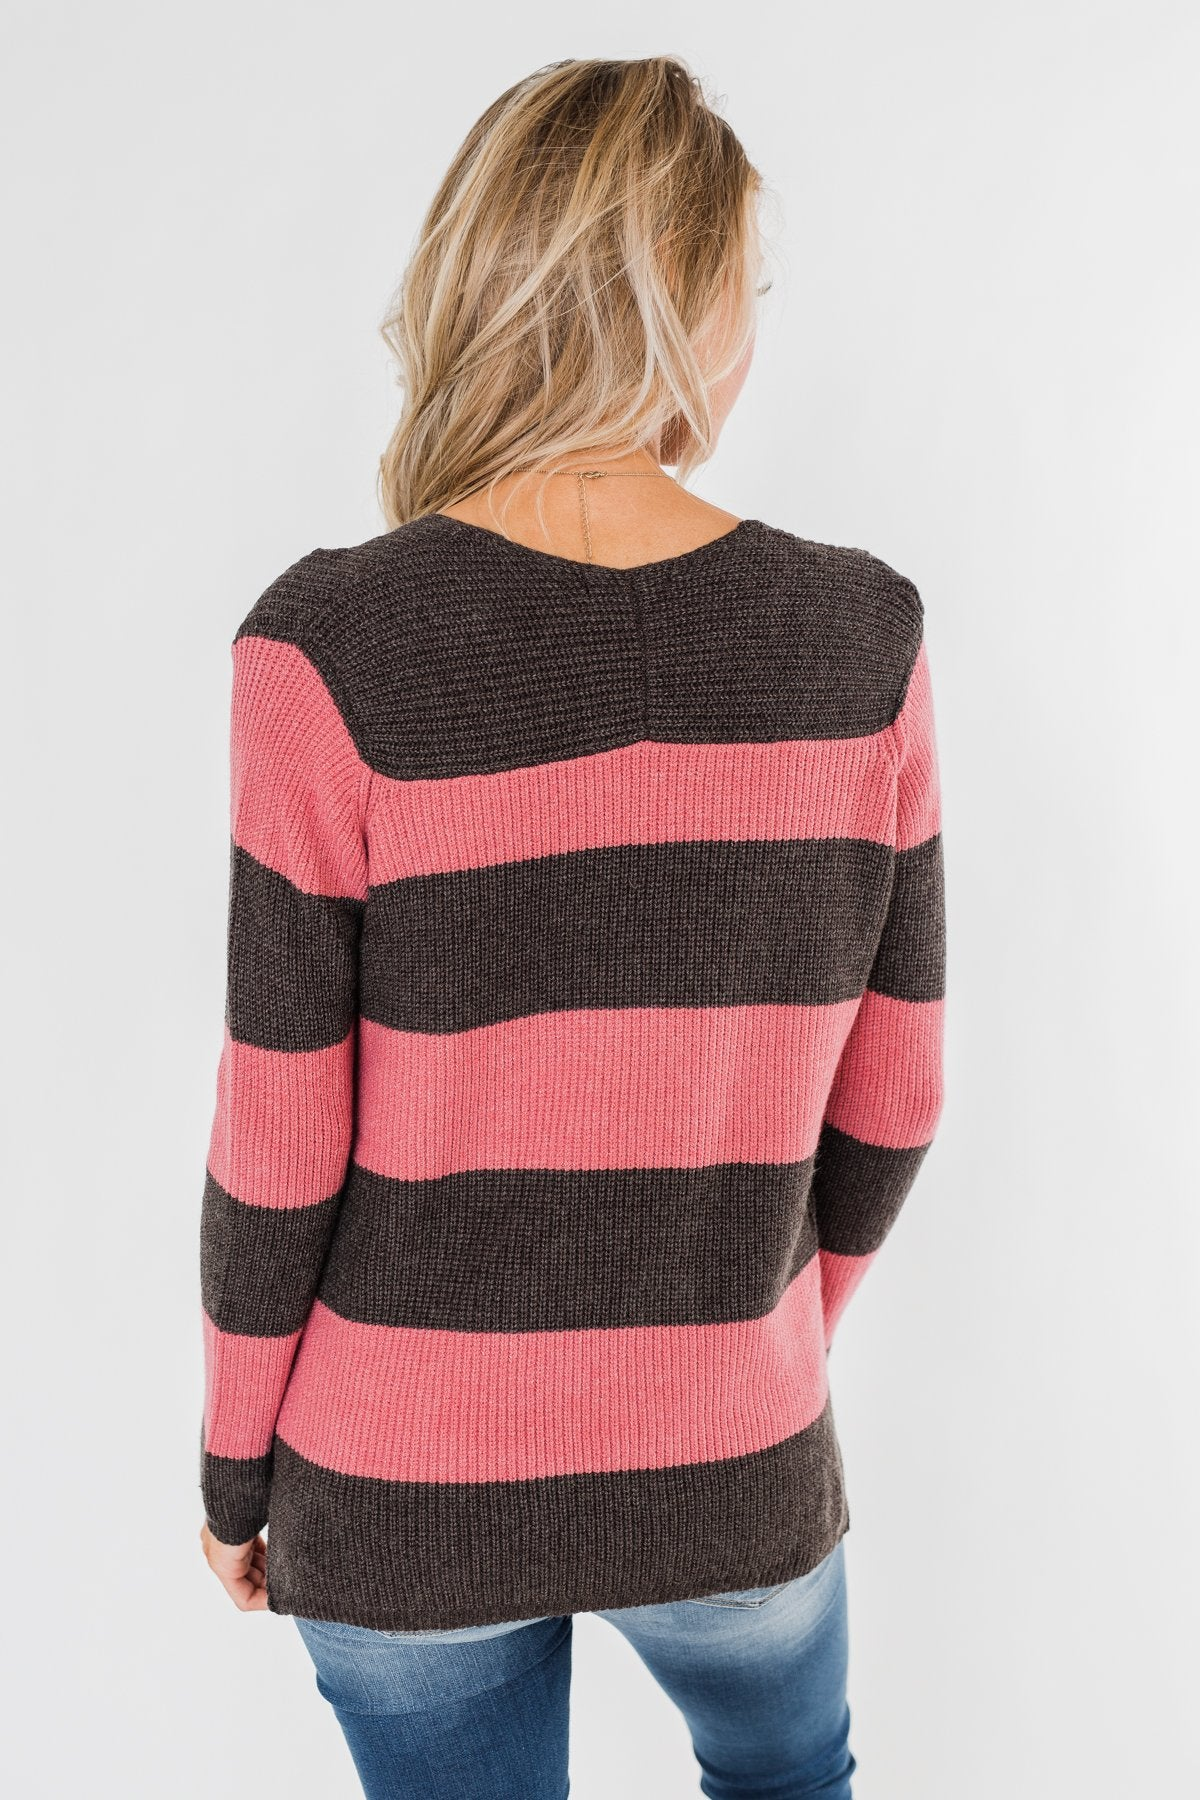 Striped Knit Sweater- Pink & Charcoal